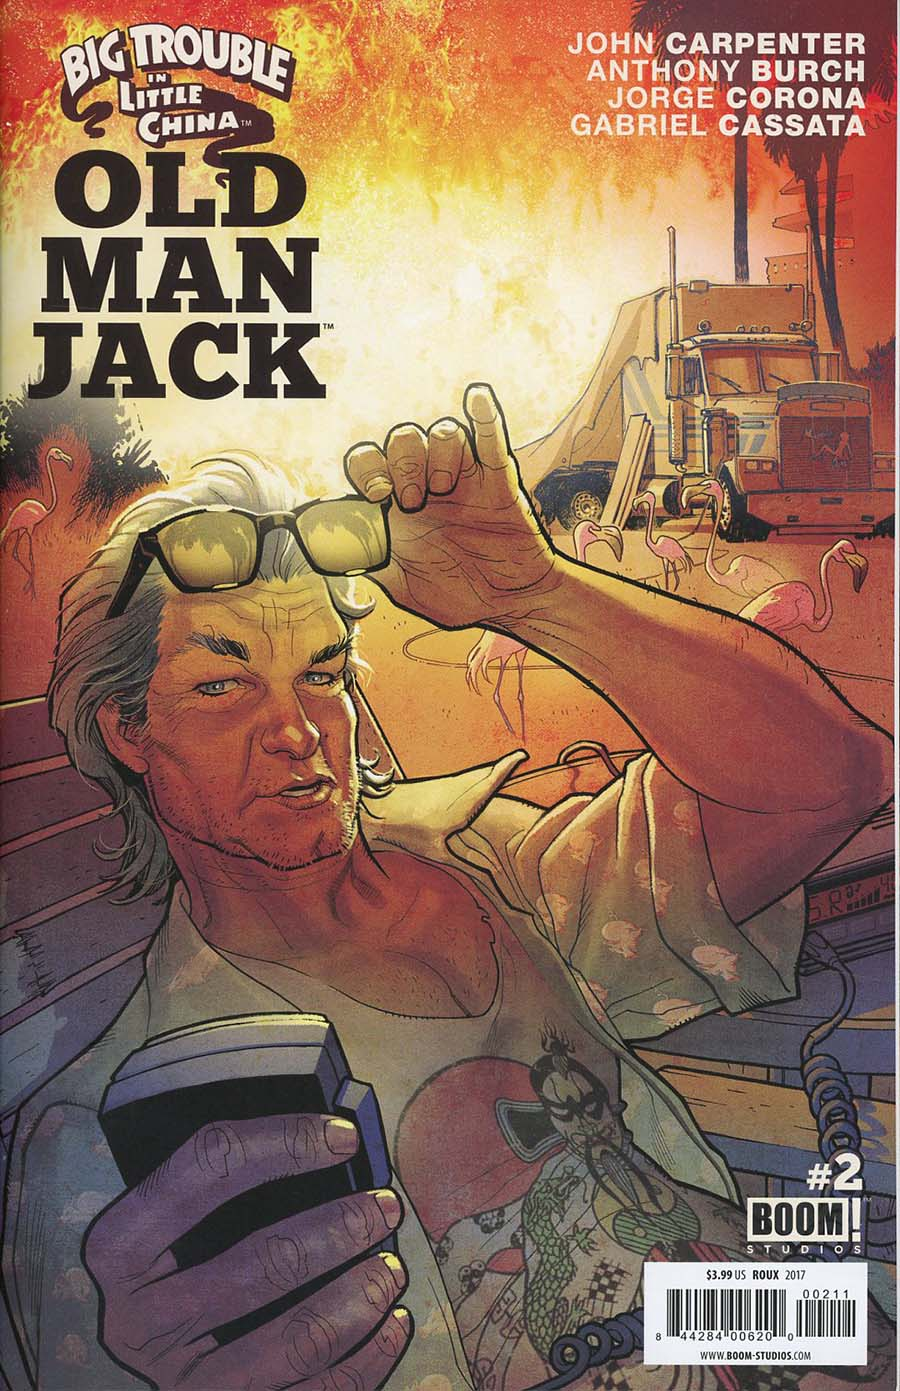 Big Trouble In Little China Old Man Jack #2 Cover A Regular Stephane Roux Cover